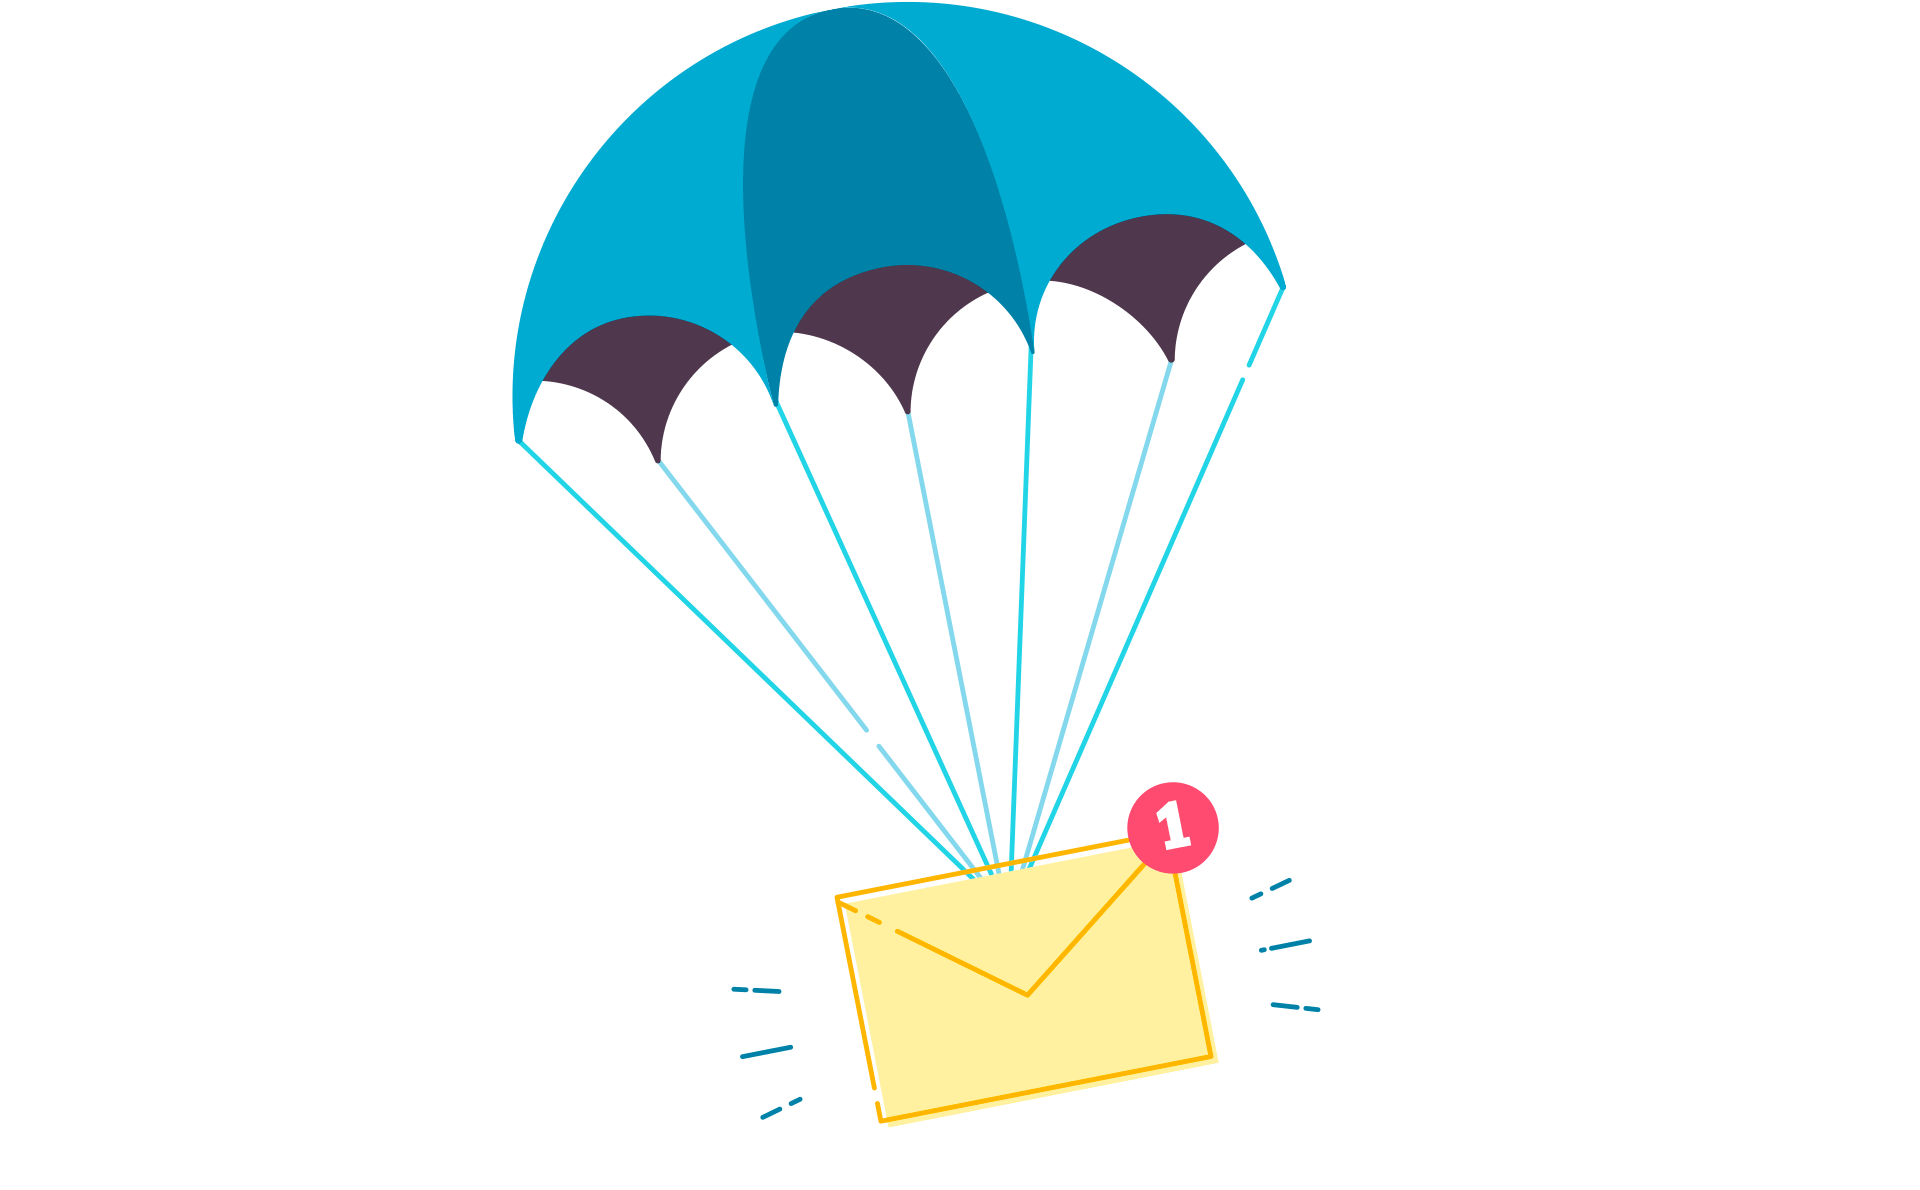 An email notification attached to a parachute.